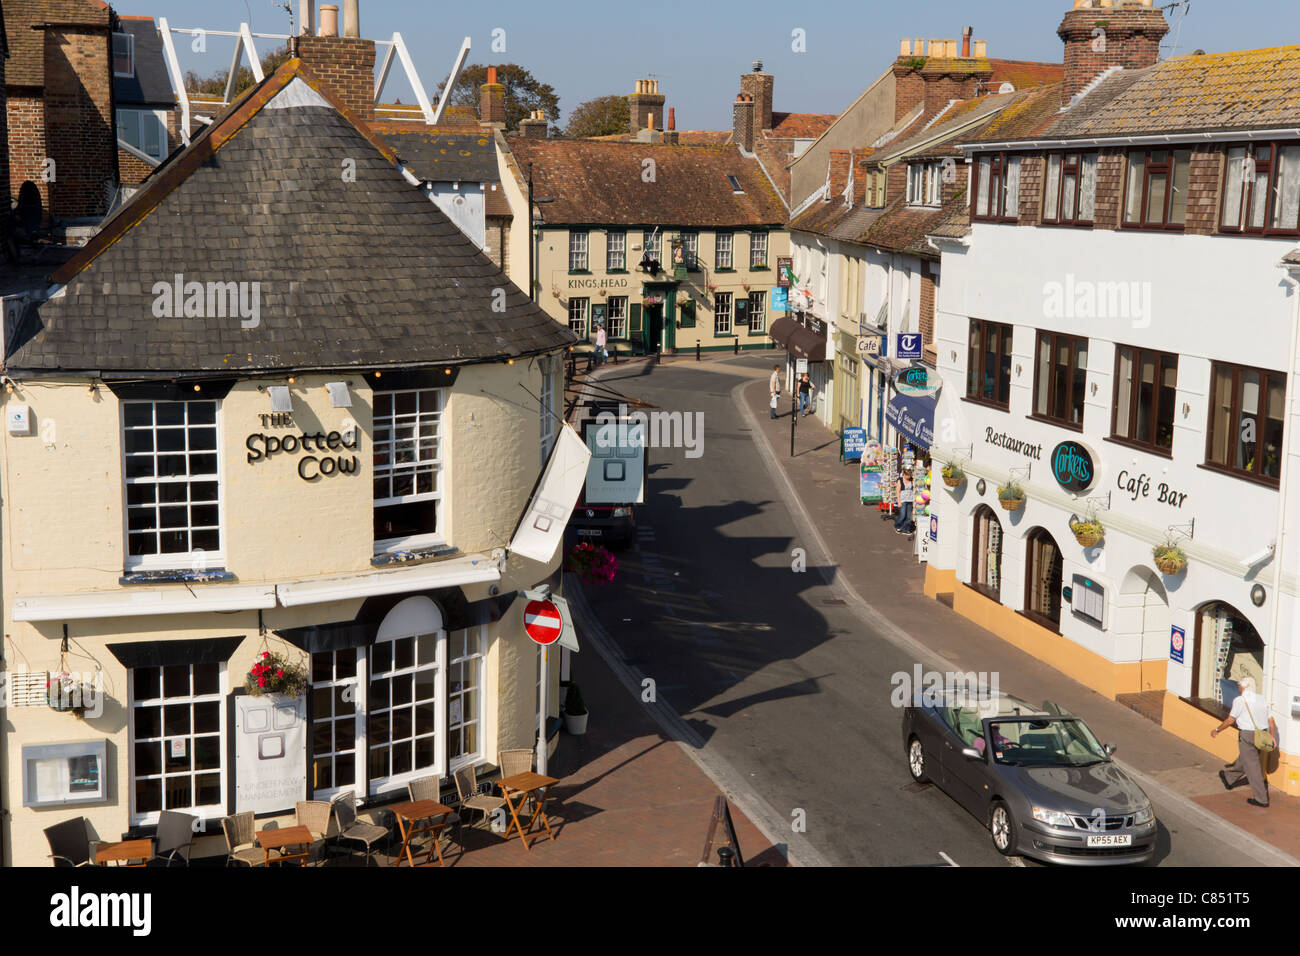 UK, Dorset, Poole streetscene - Stock Image